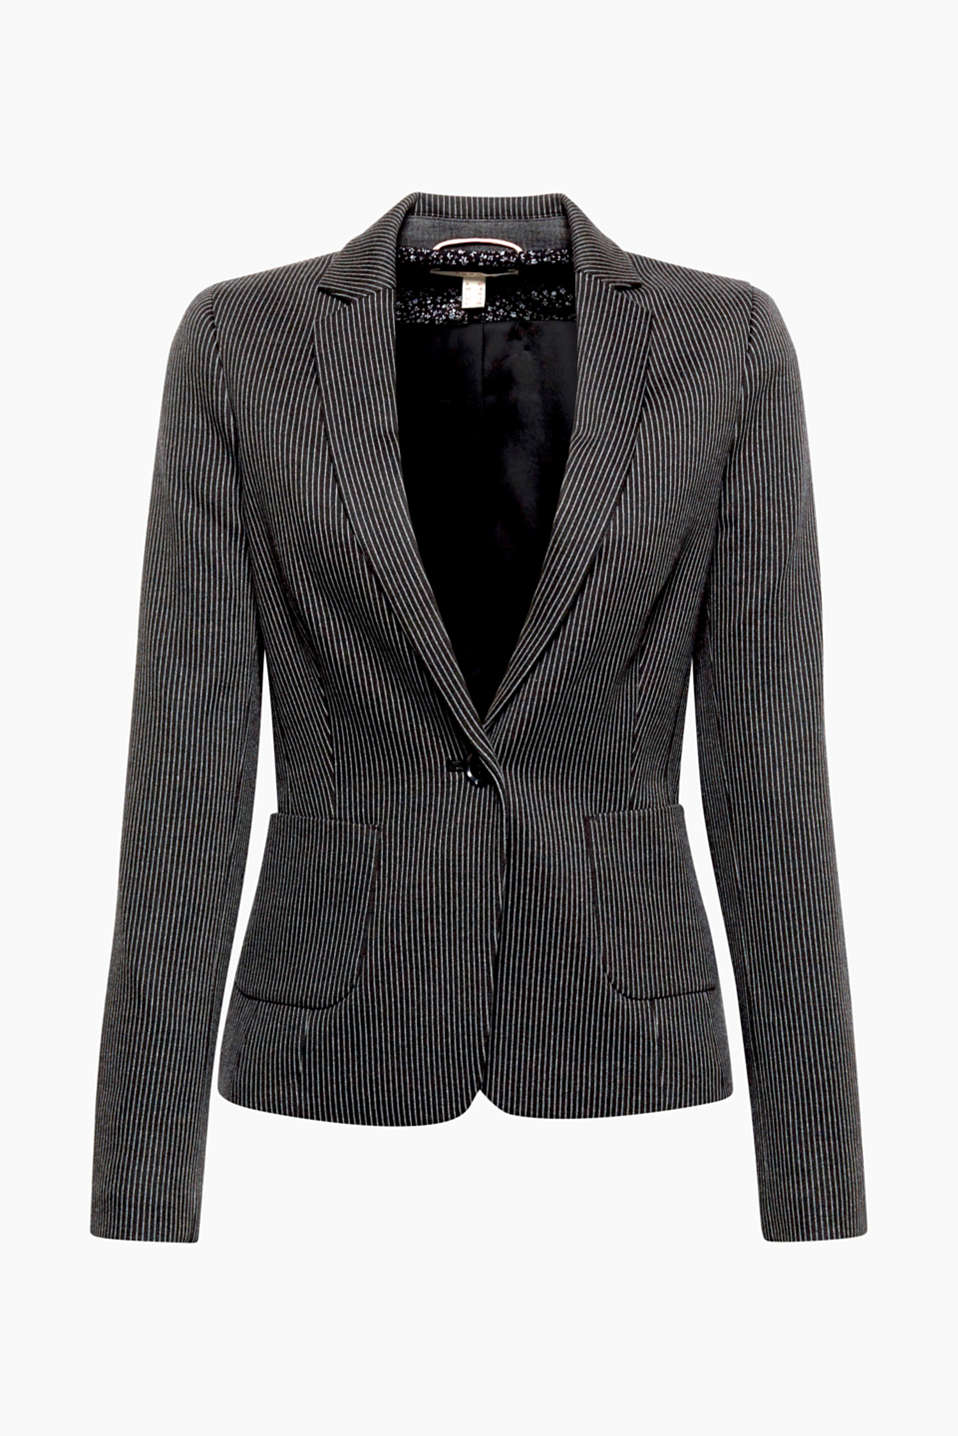 Combine this 1-button, soft jersey blazer with the matching trousers or your fave pair of skinny jeans!